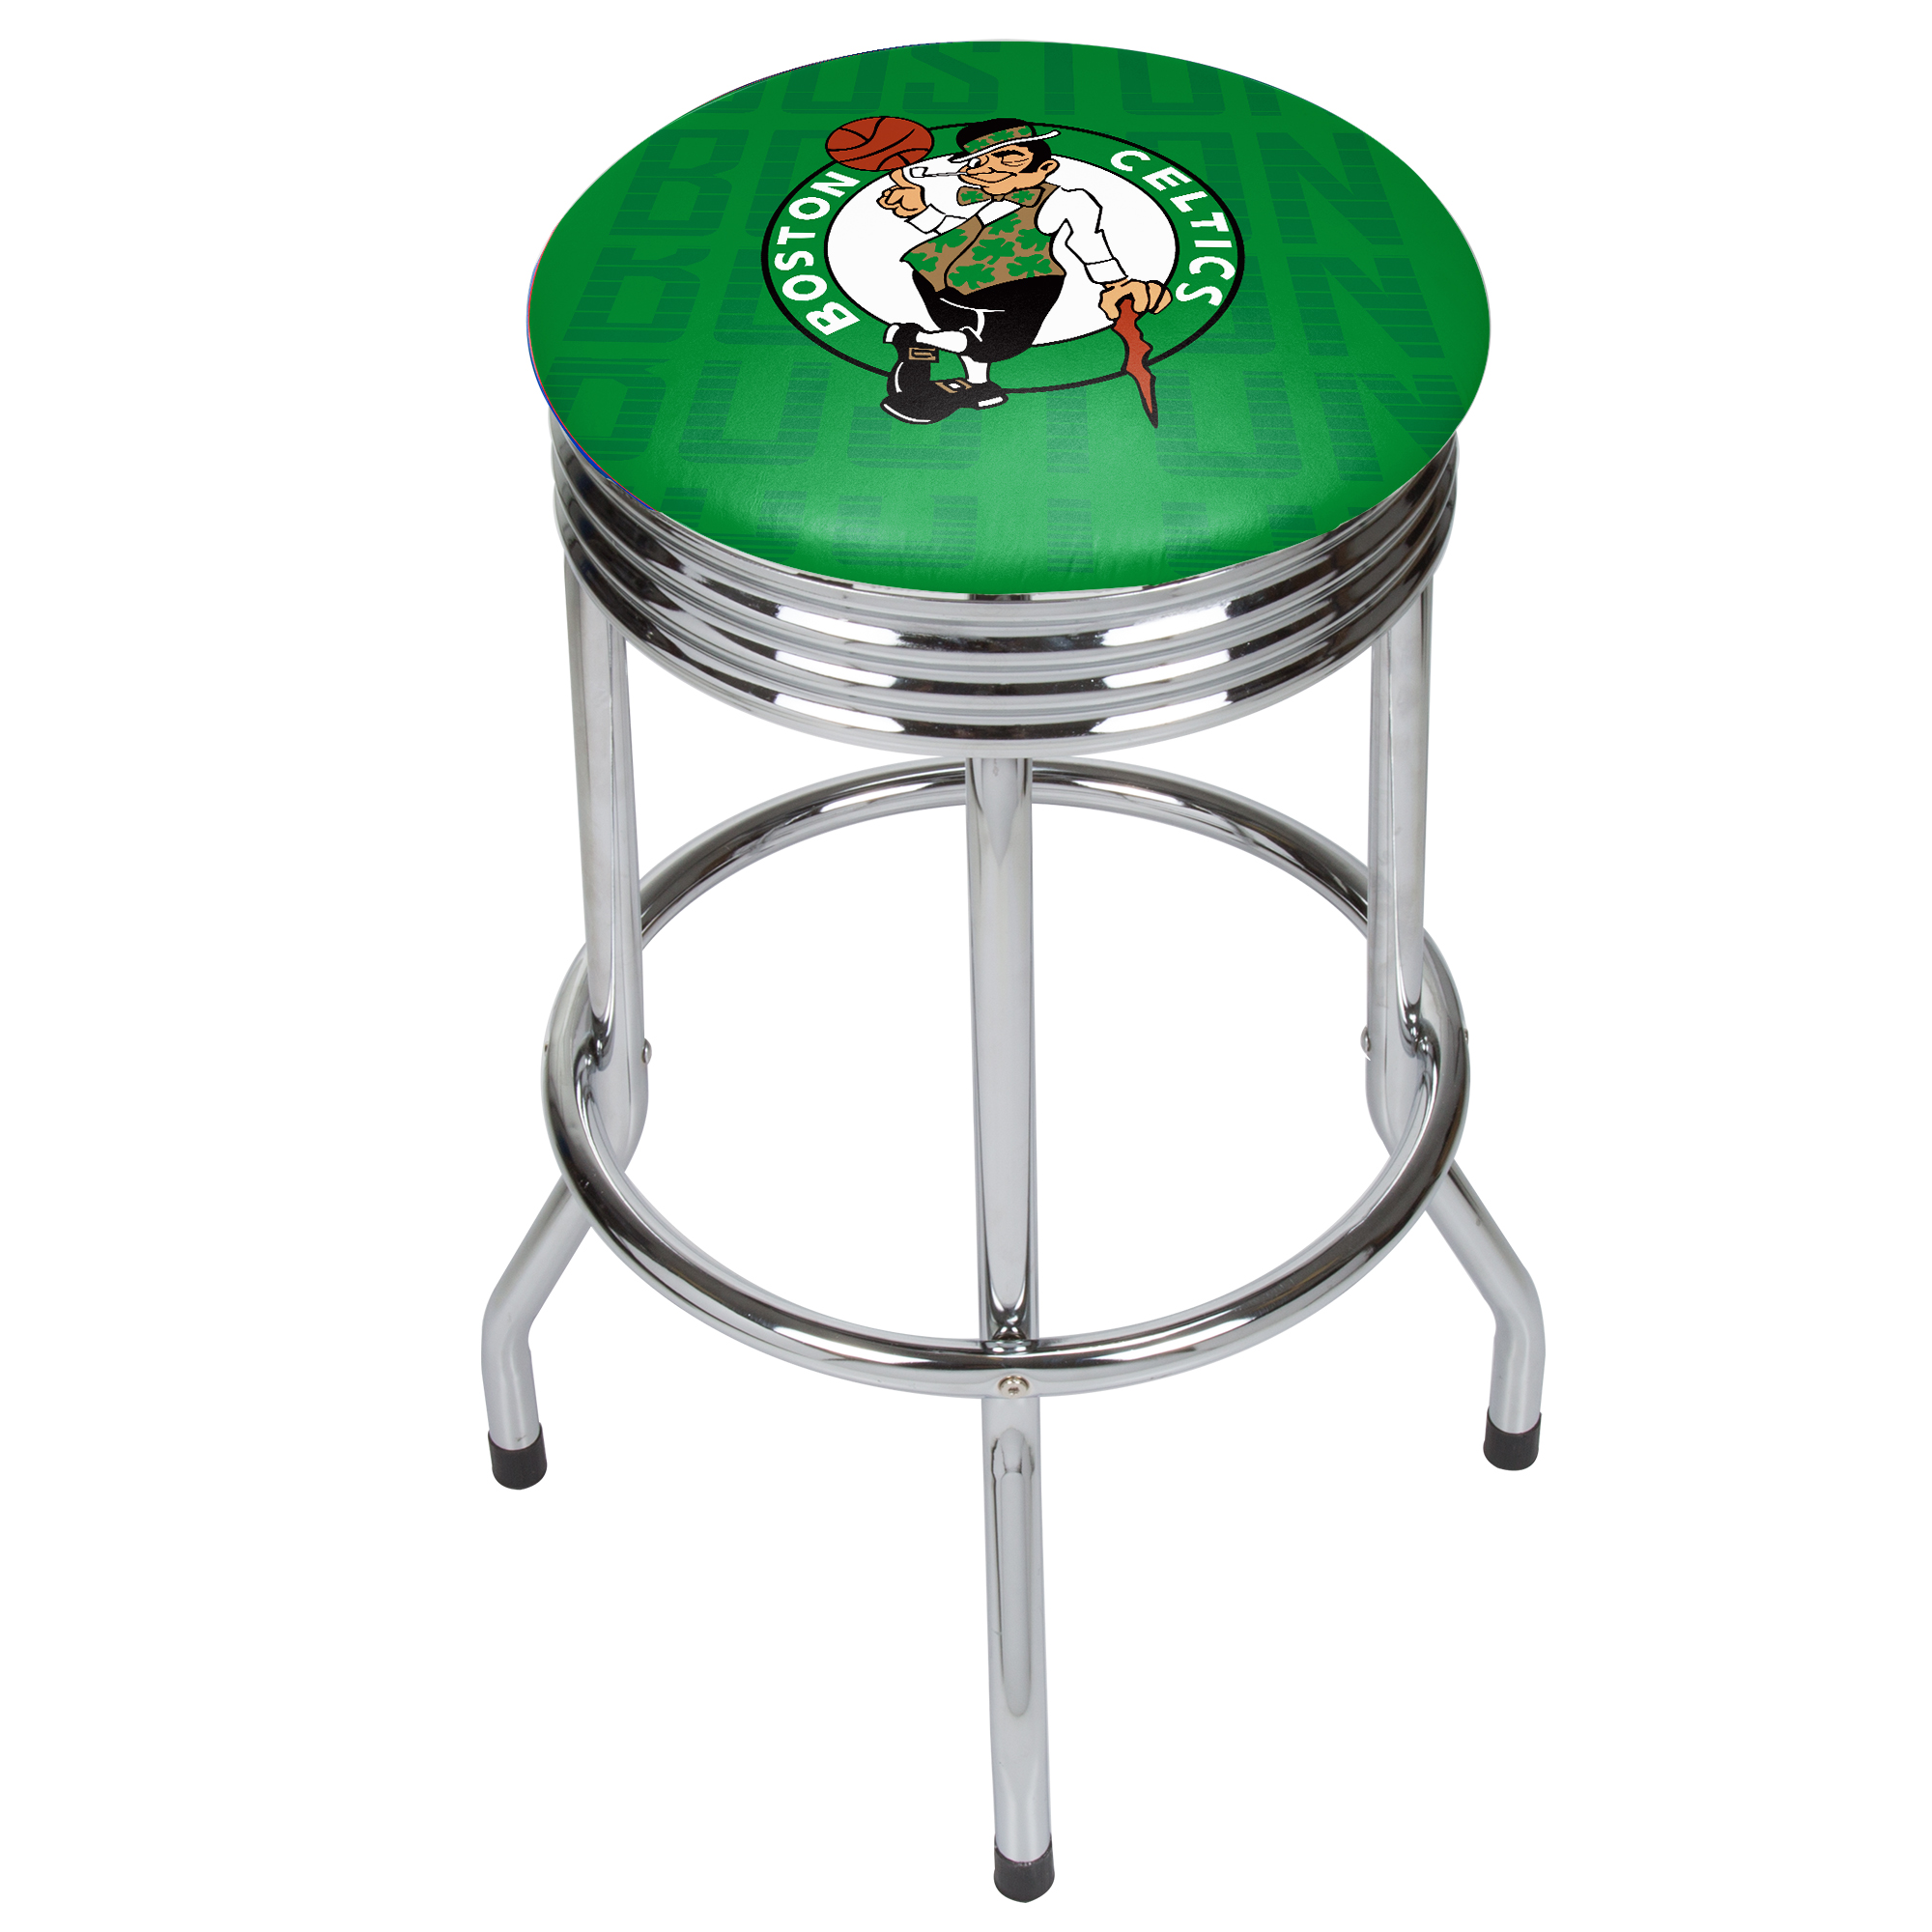 NBA Chrome Ribbed Bar Stool - City - Boston Celtics